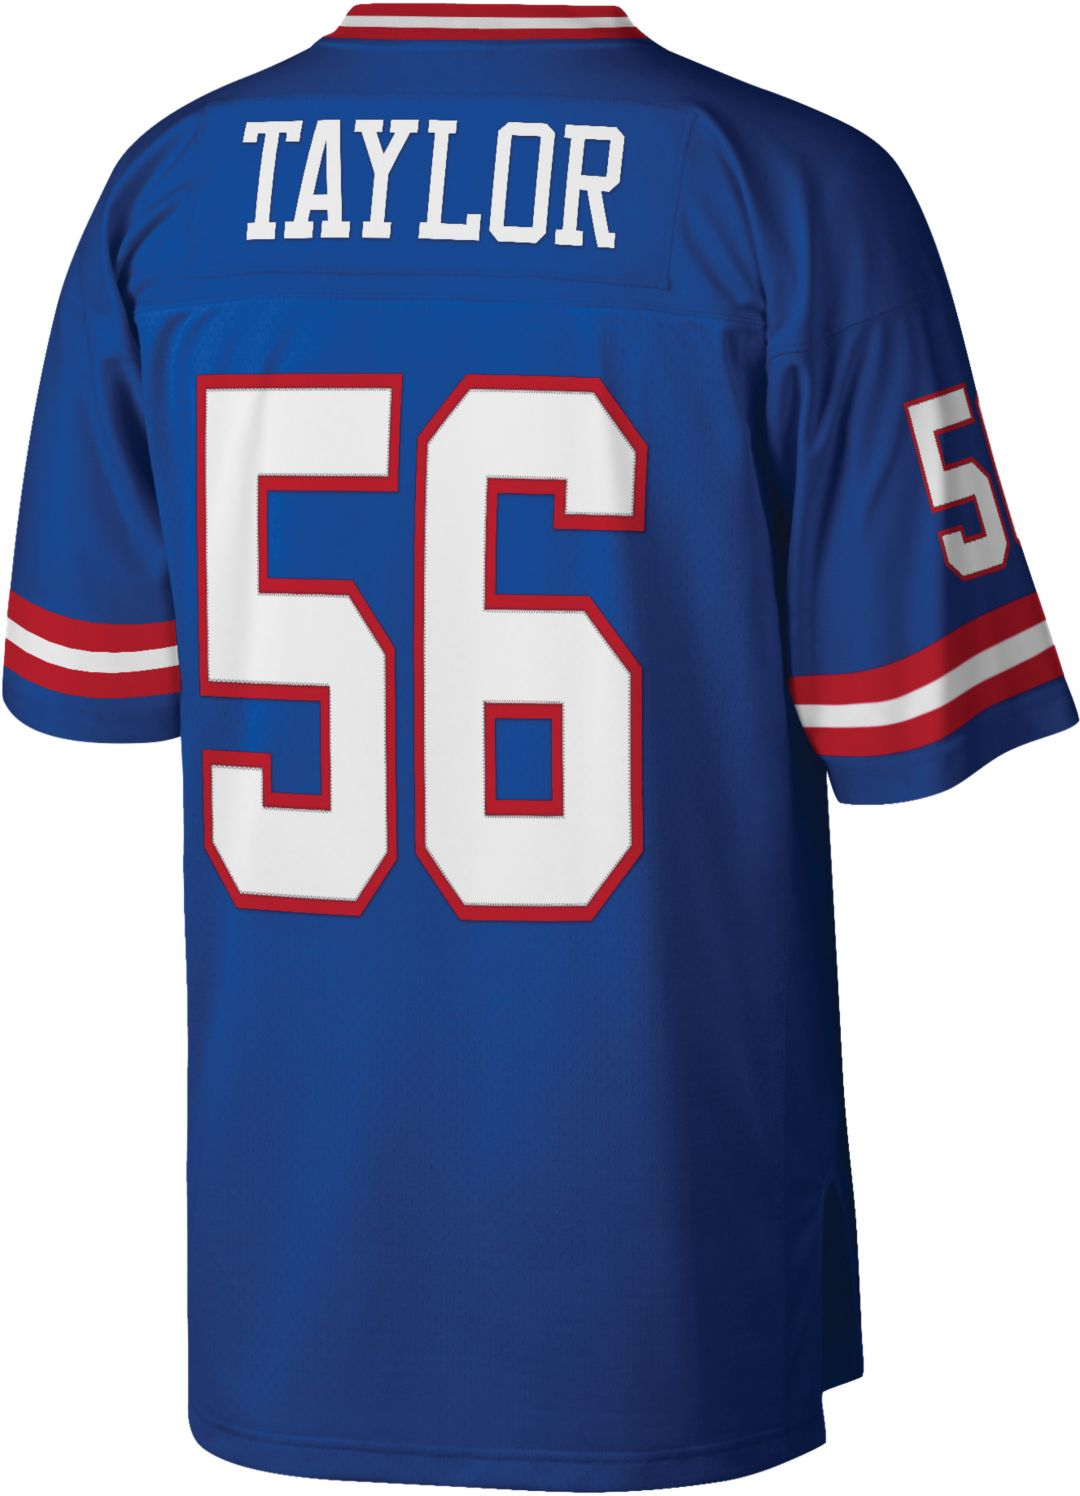 competitive price 6fa3a c772d Mitchell & Ness Men's 1986 Game Jersey New York Giants Lawrence Taylor #56